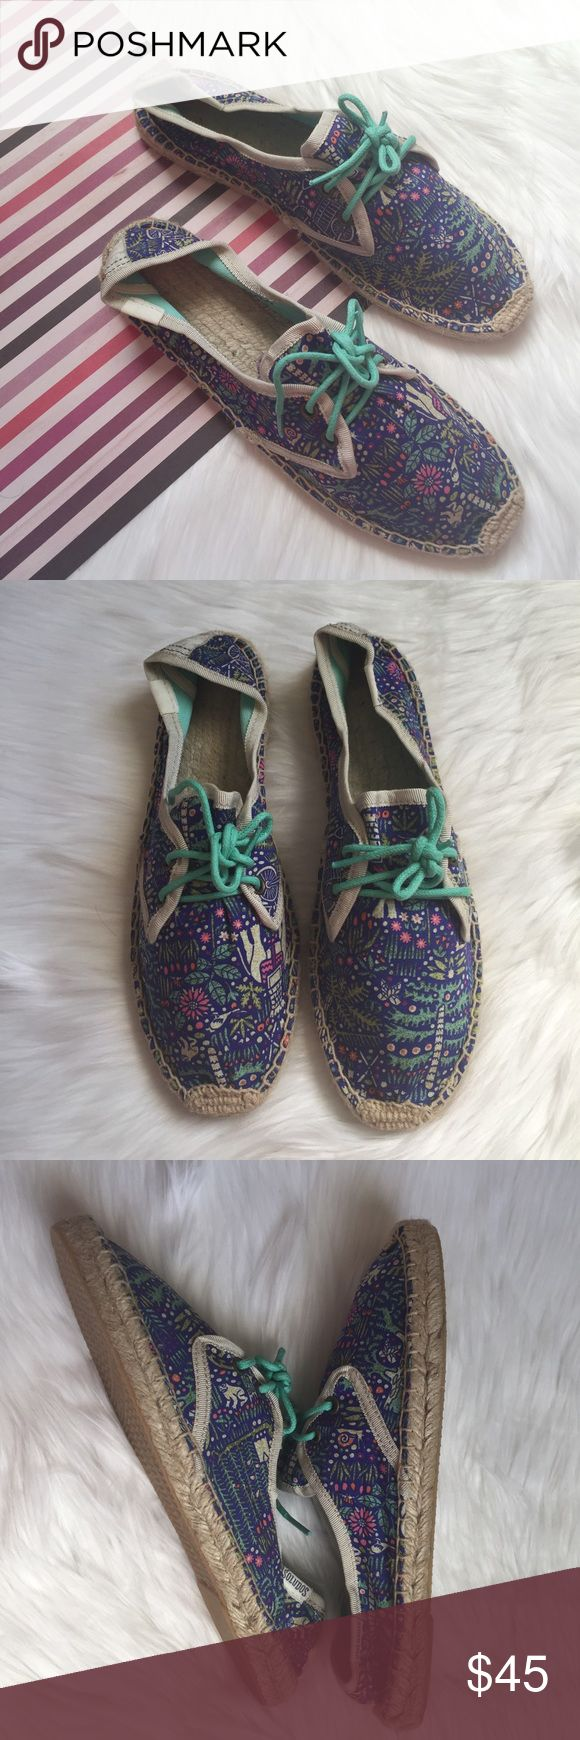 """(NEW) Soludos Derby Lace up Espadrille Size 38 New without box, Women's lace up espadrilles, textile upper, braided jute trim midsole, rubber sole, .5"""" sole height, Multicolor. Please feel free to ask questions. No trades. Soludos Shoes Espadrilles"""